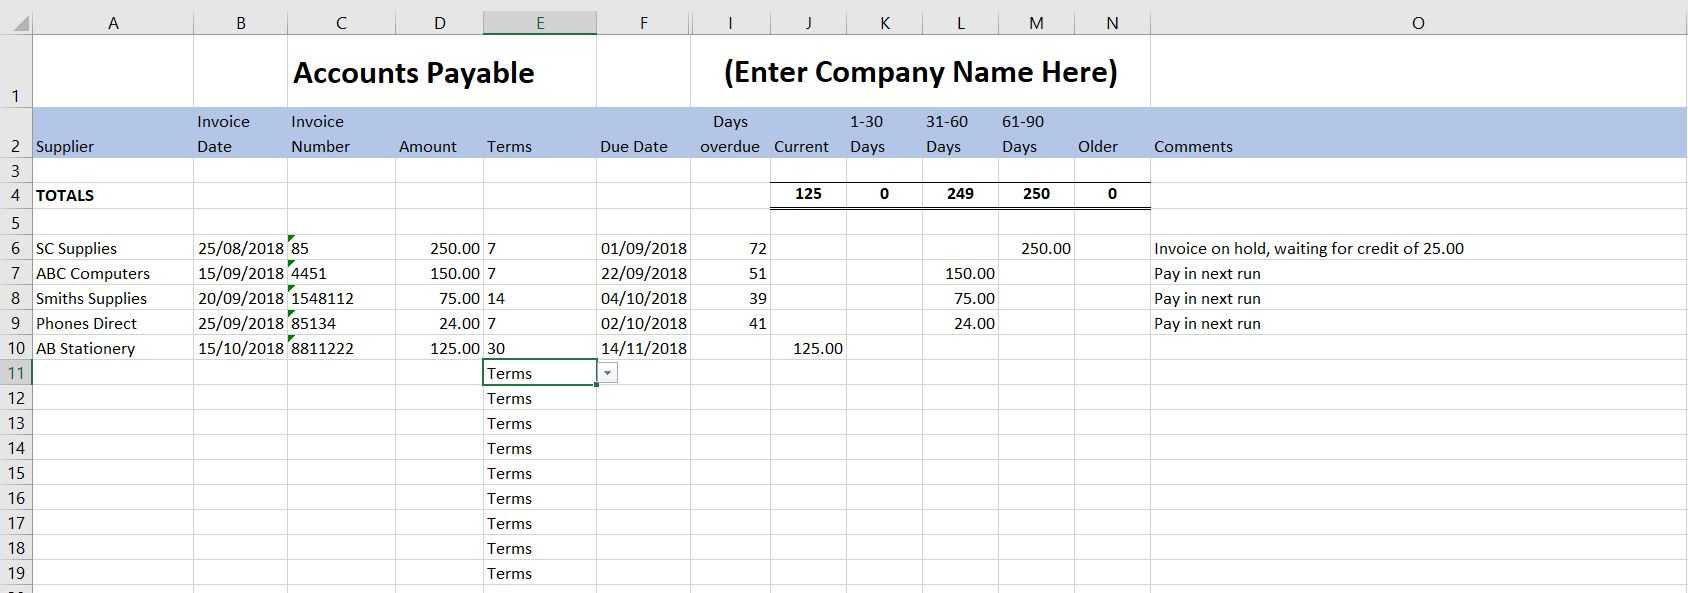 Free Excel Bookkeeping Templates - 14 Accounts Spreadsheets Regarding Excel Templates For Small Business Accounting